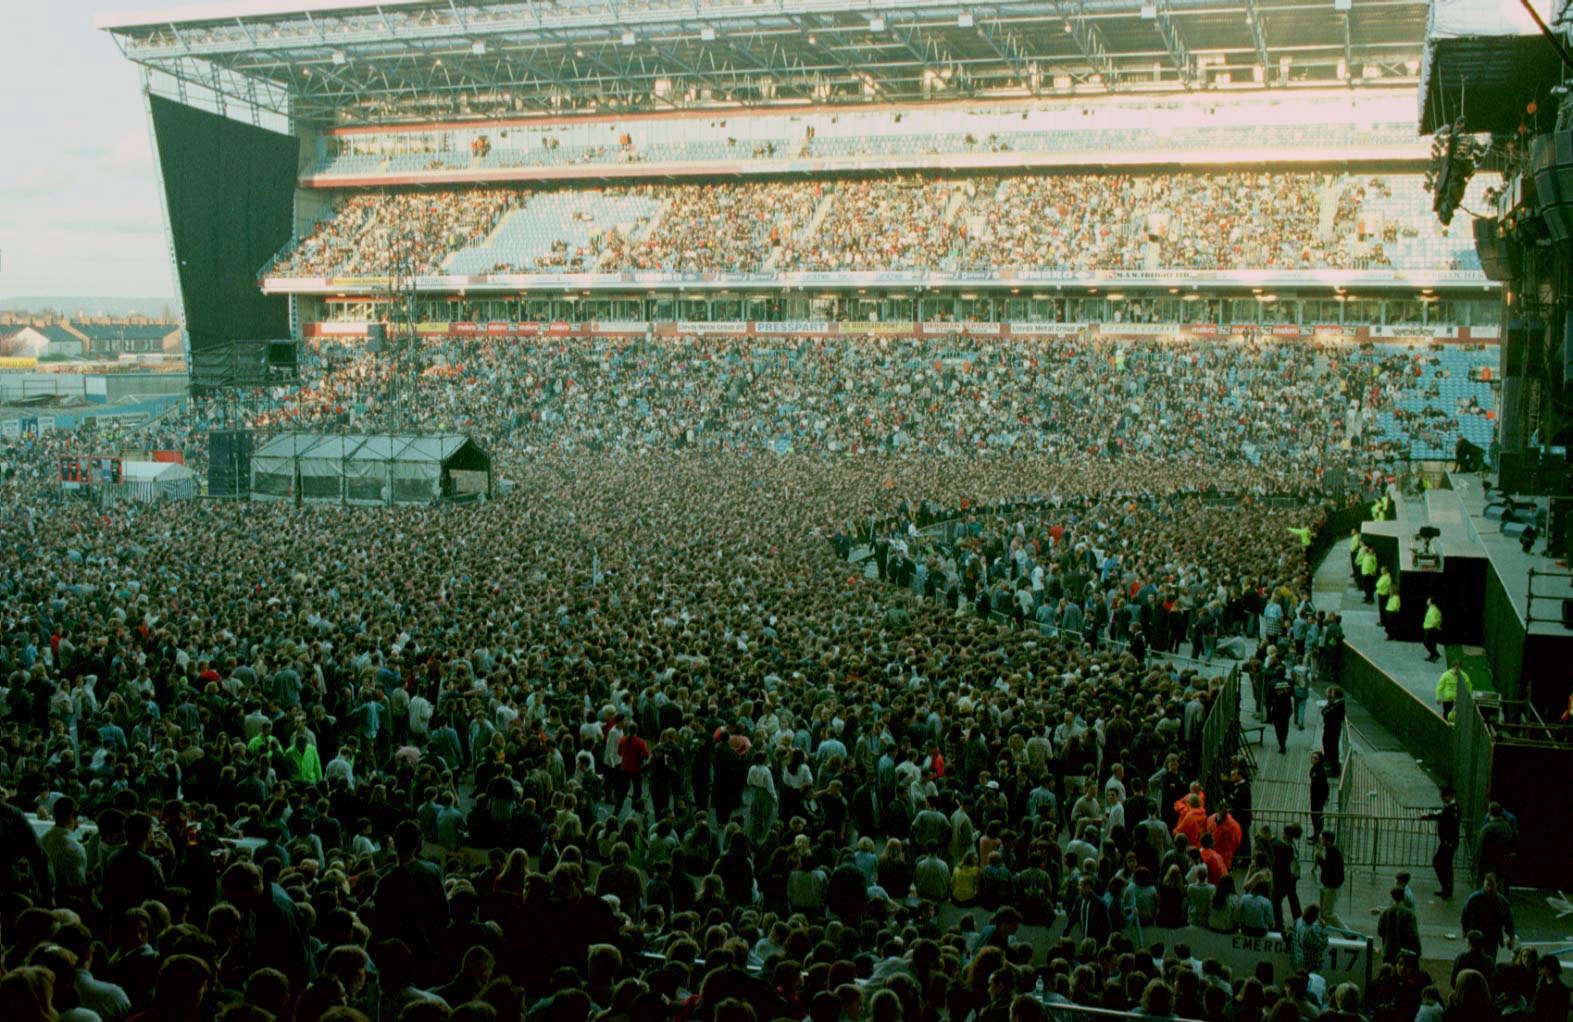 Oasis at Maine Road April 1996